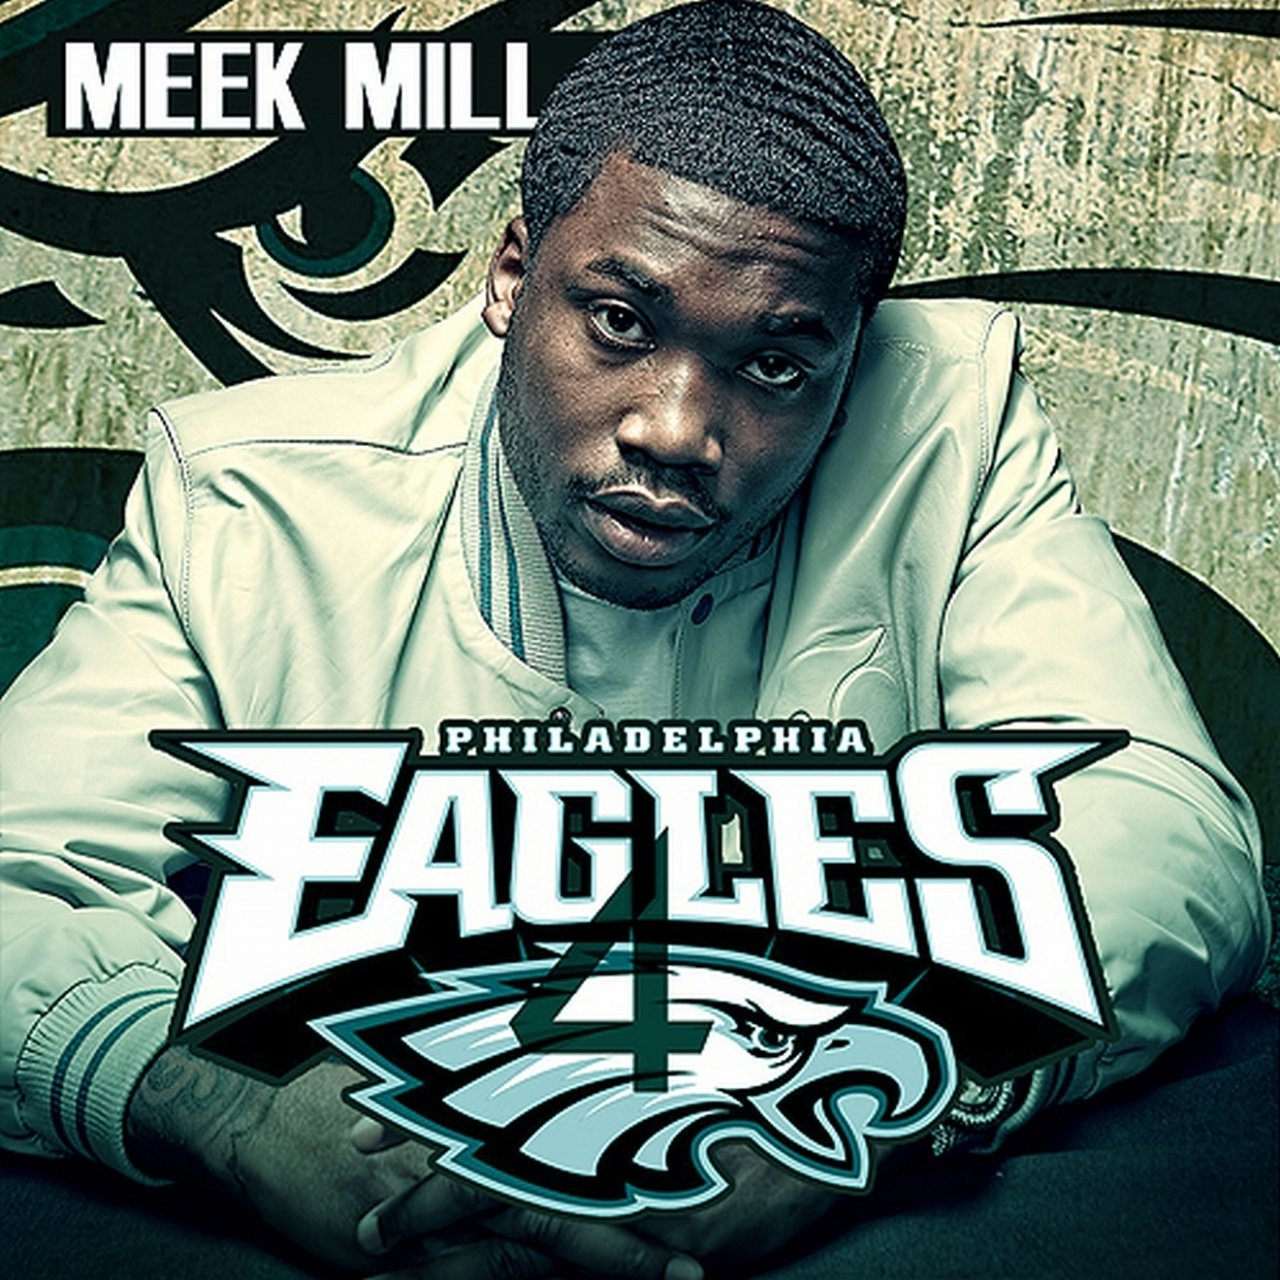 Philadephia Eagles 4